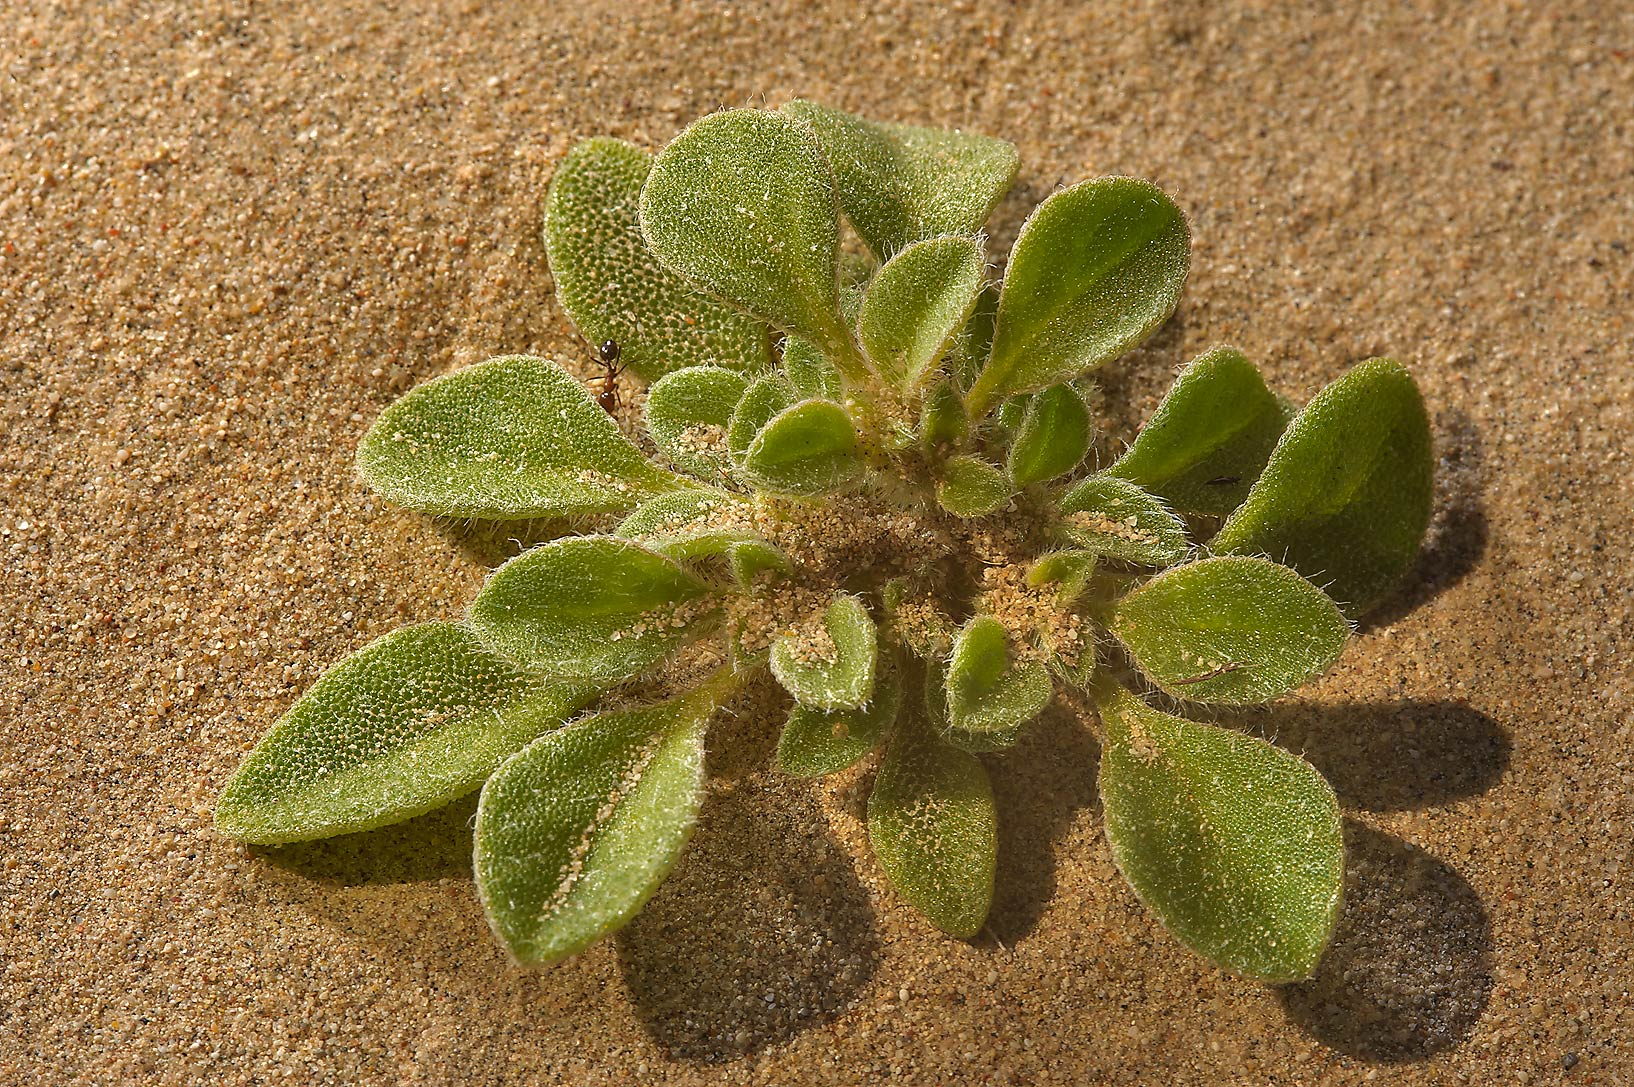 Desert plant purslane-leaved aizoon (Aizoon...of Salwa Rd. in south-western Qatar